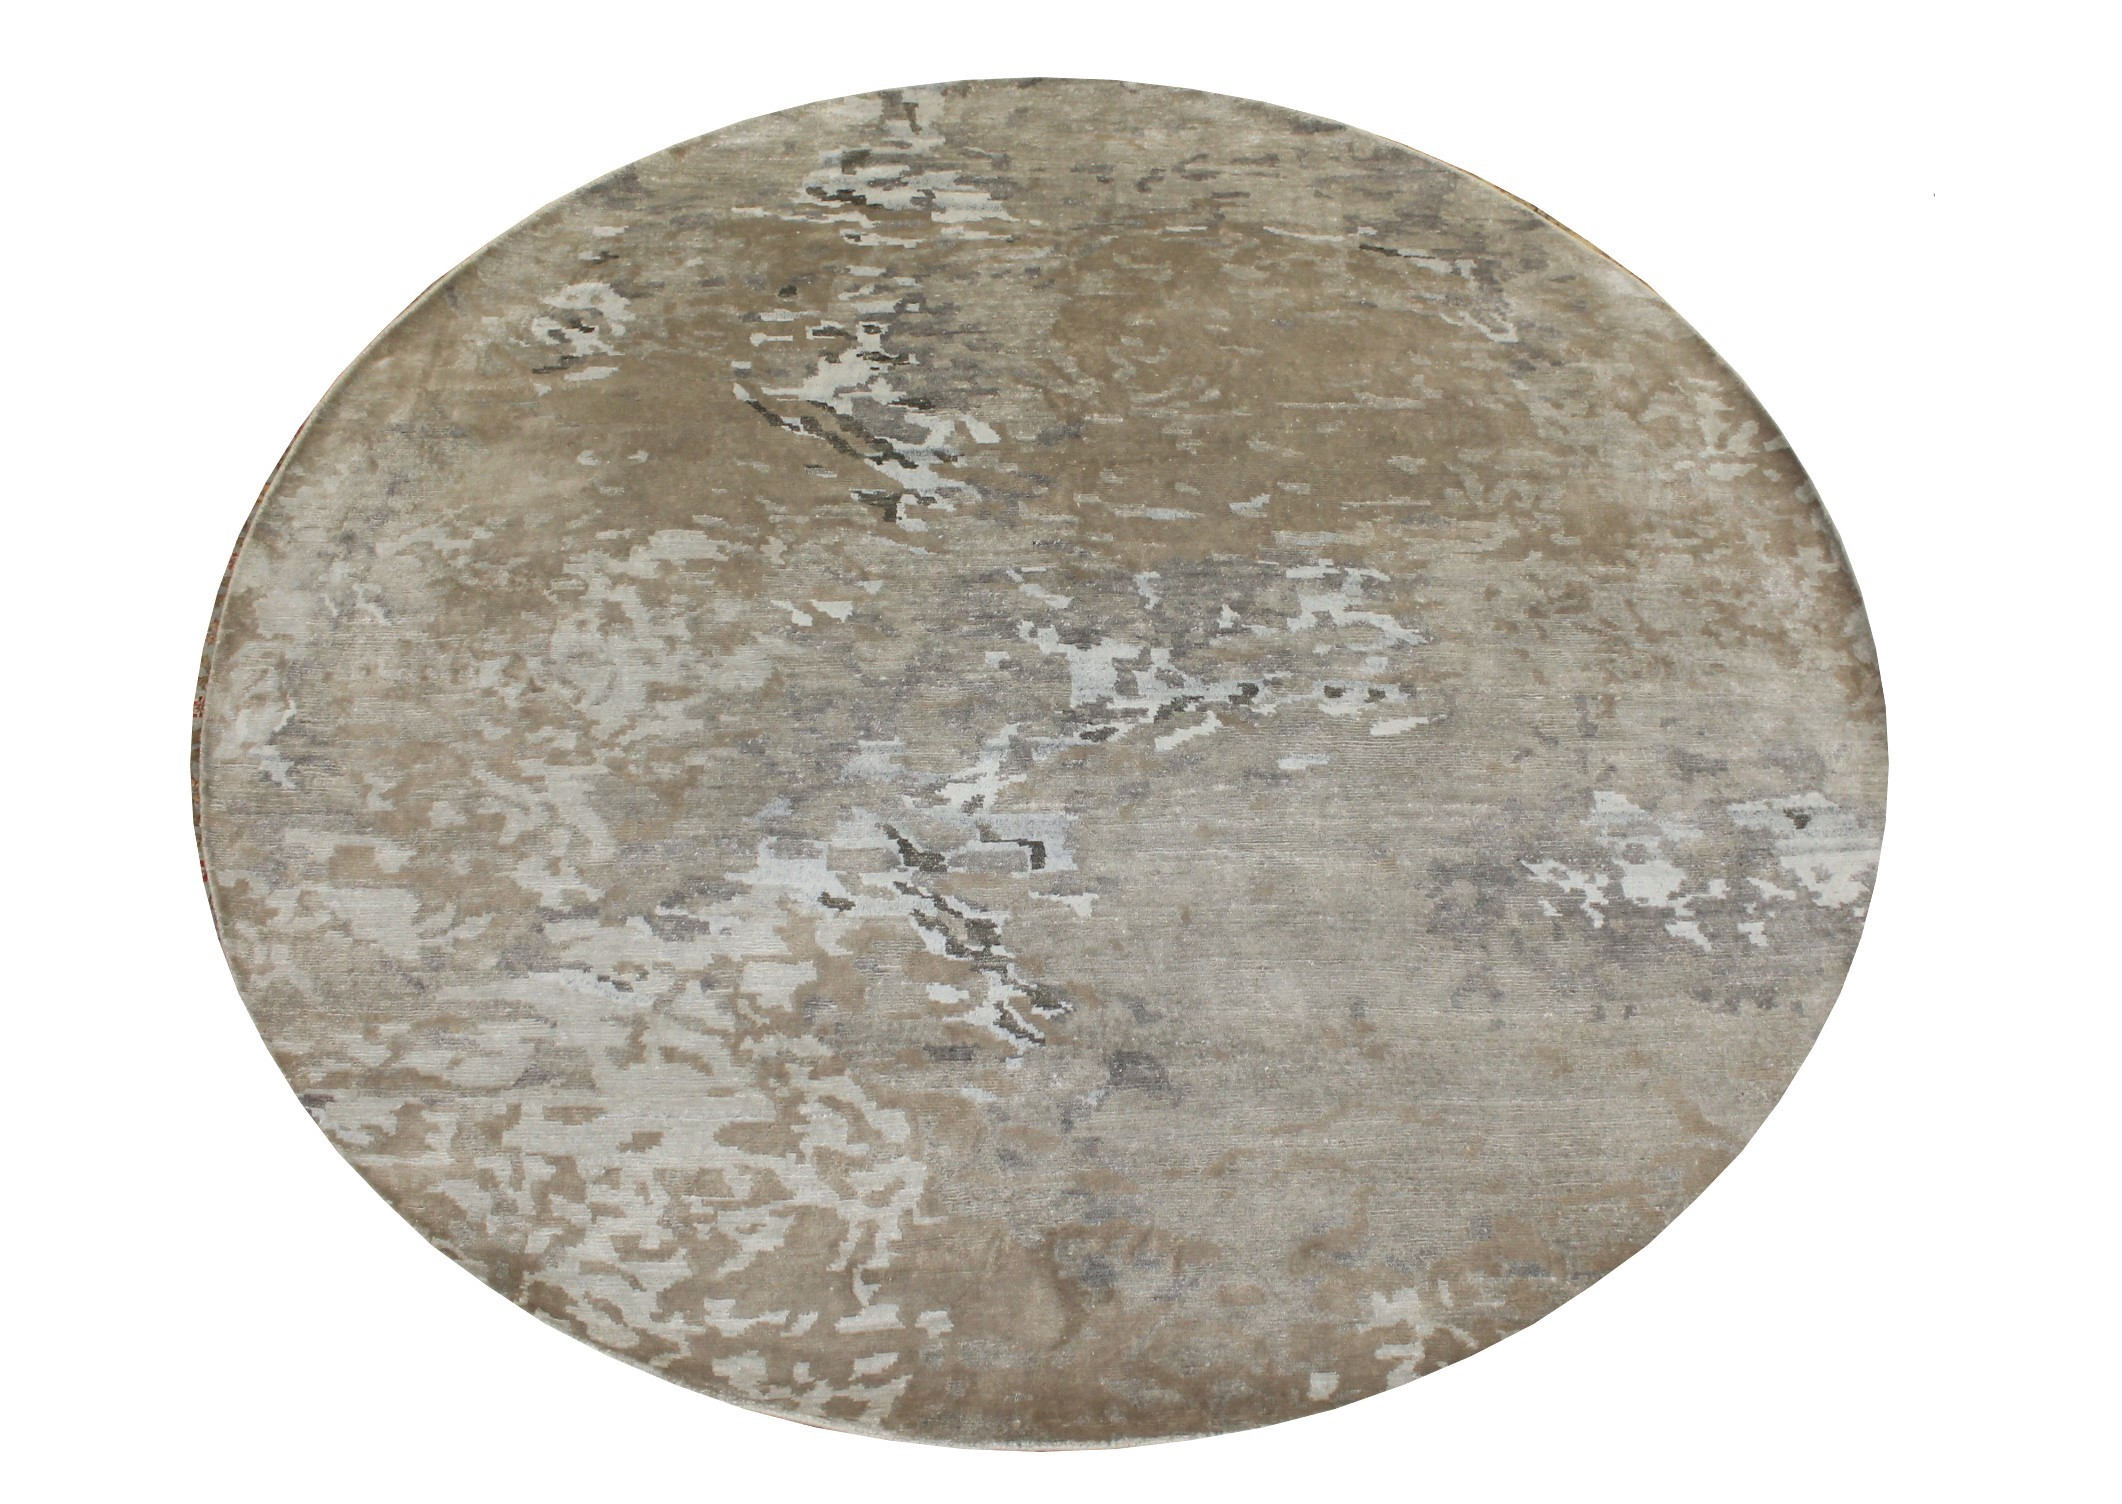 8 ft. Round & Square Modern Hand Knotted Wool Area Rug - MR024311